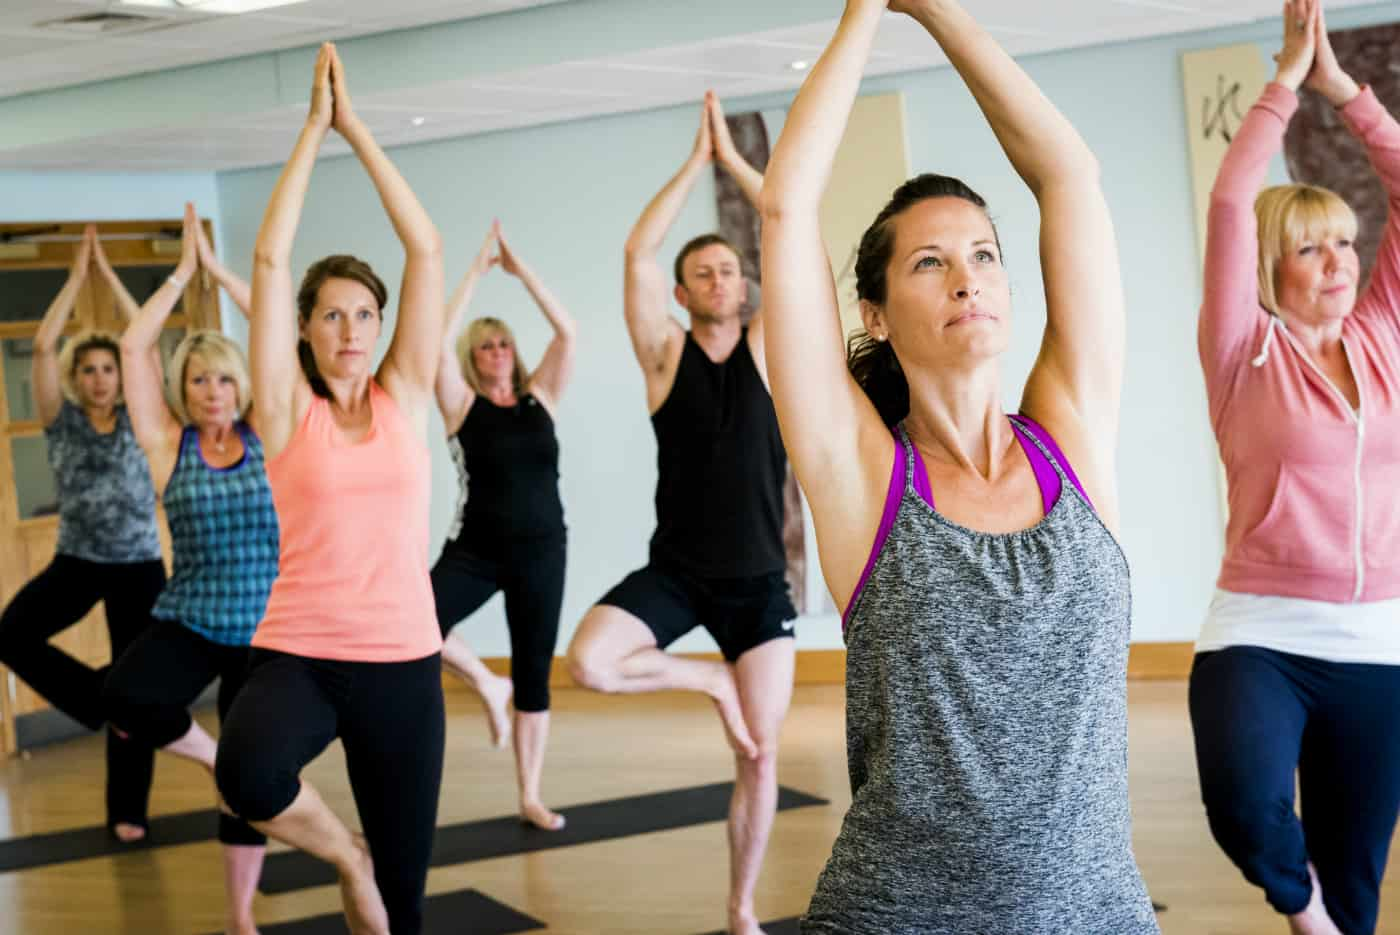 Guests doing Yoga in studio during fitness break